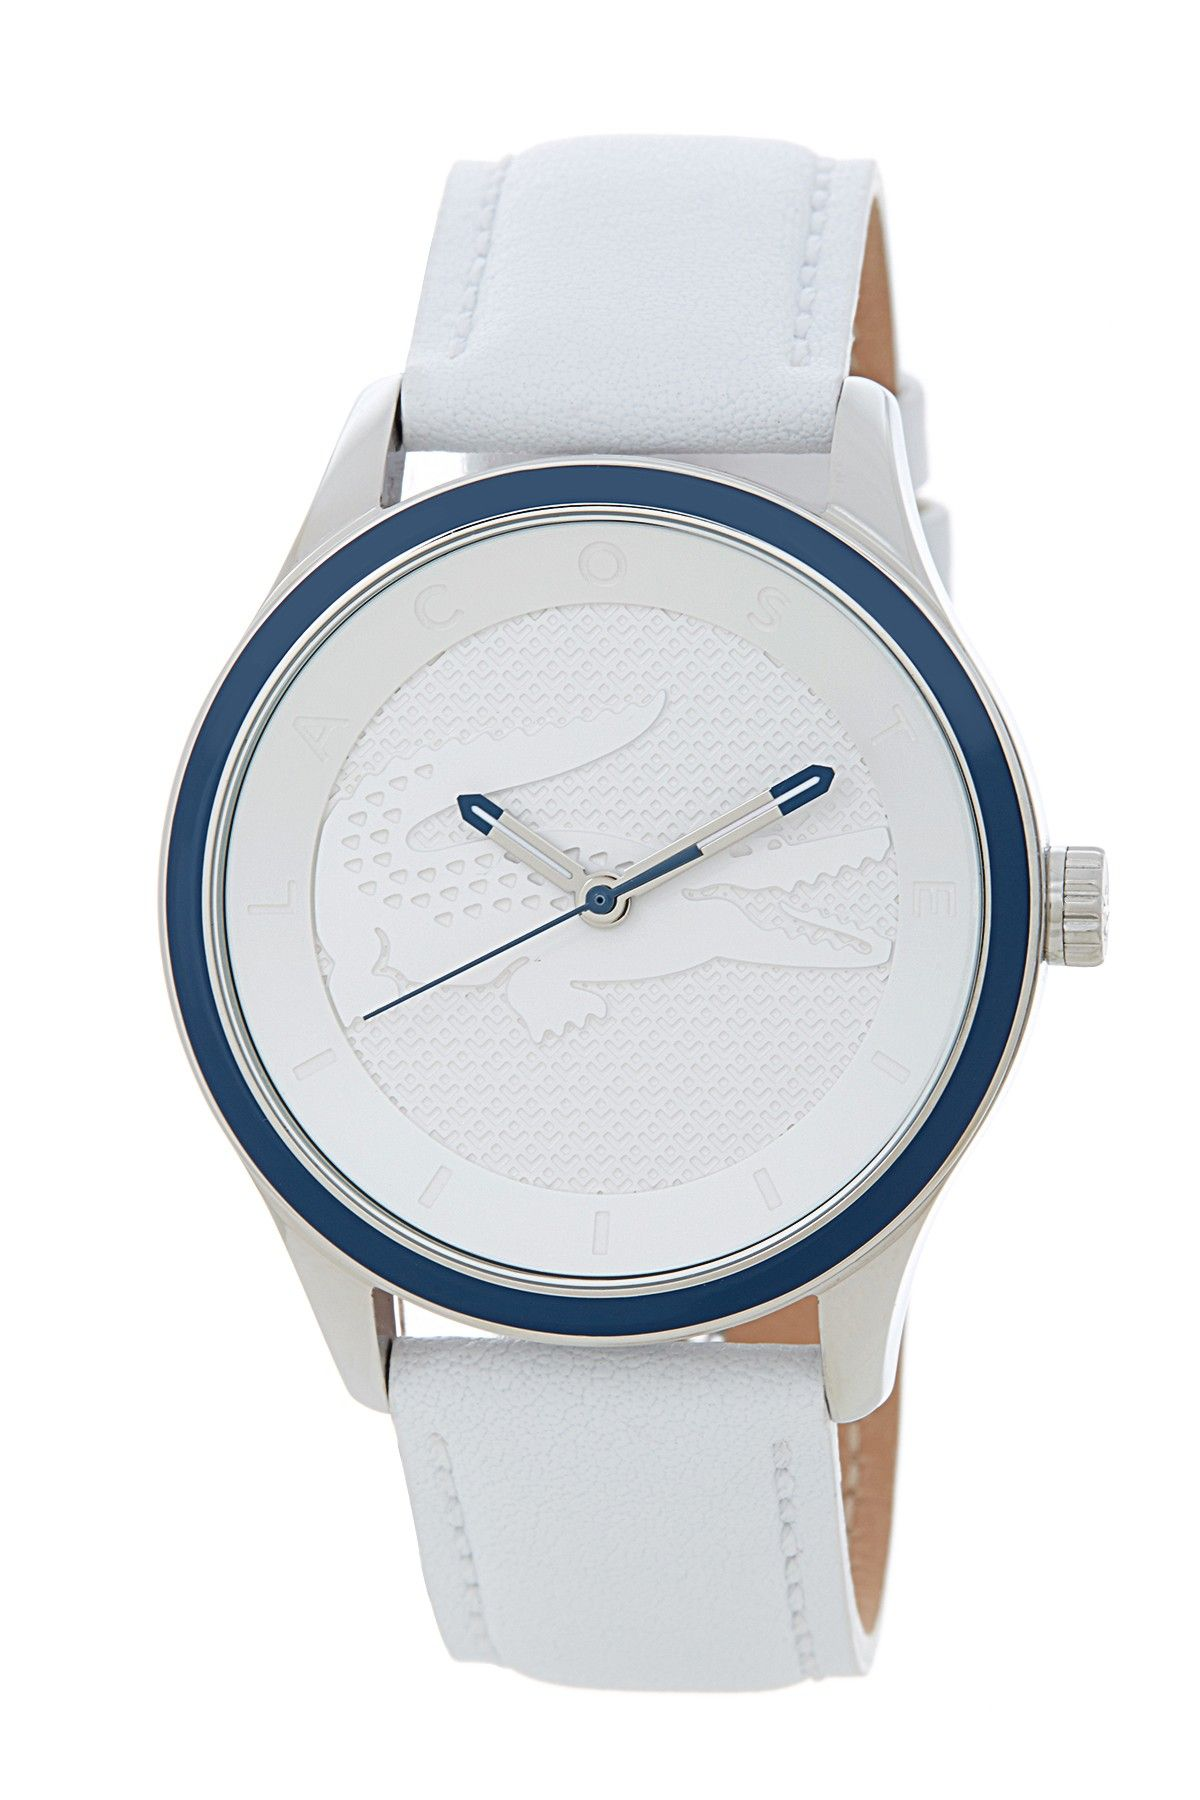 85462d9f7fd5 Lacoste Women s Victoria Leather Strap Watch by Lacoste on  nordstrom rack